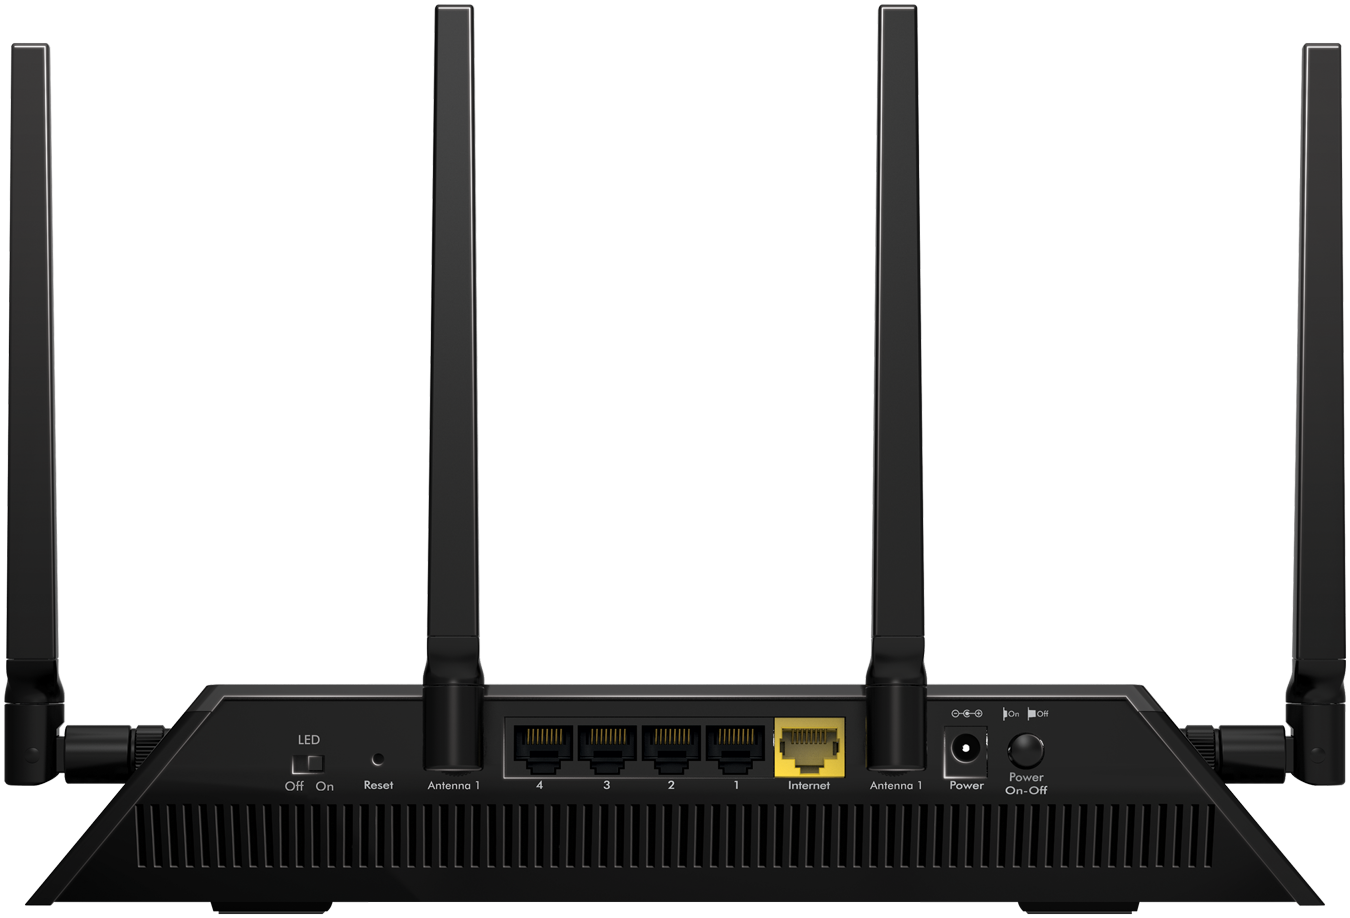 R7800 Ac2600 Nighthawk X4s Gaming Router Netgear Modem Wiring Diagram